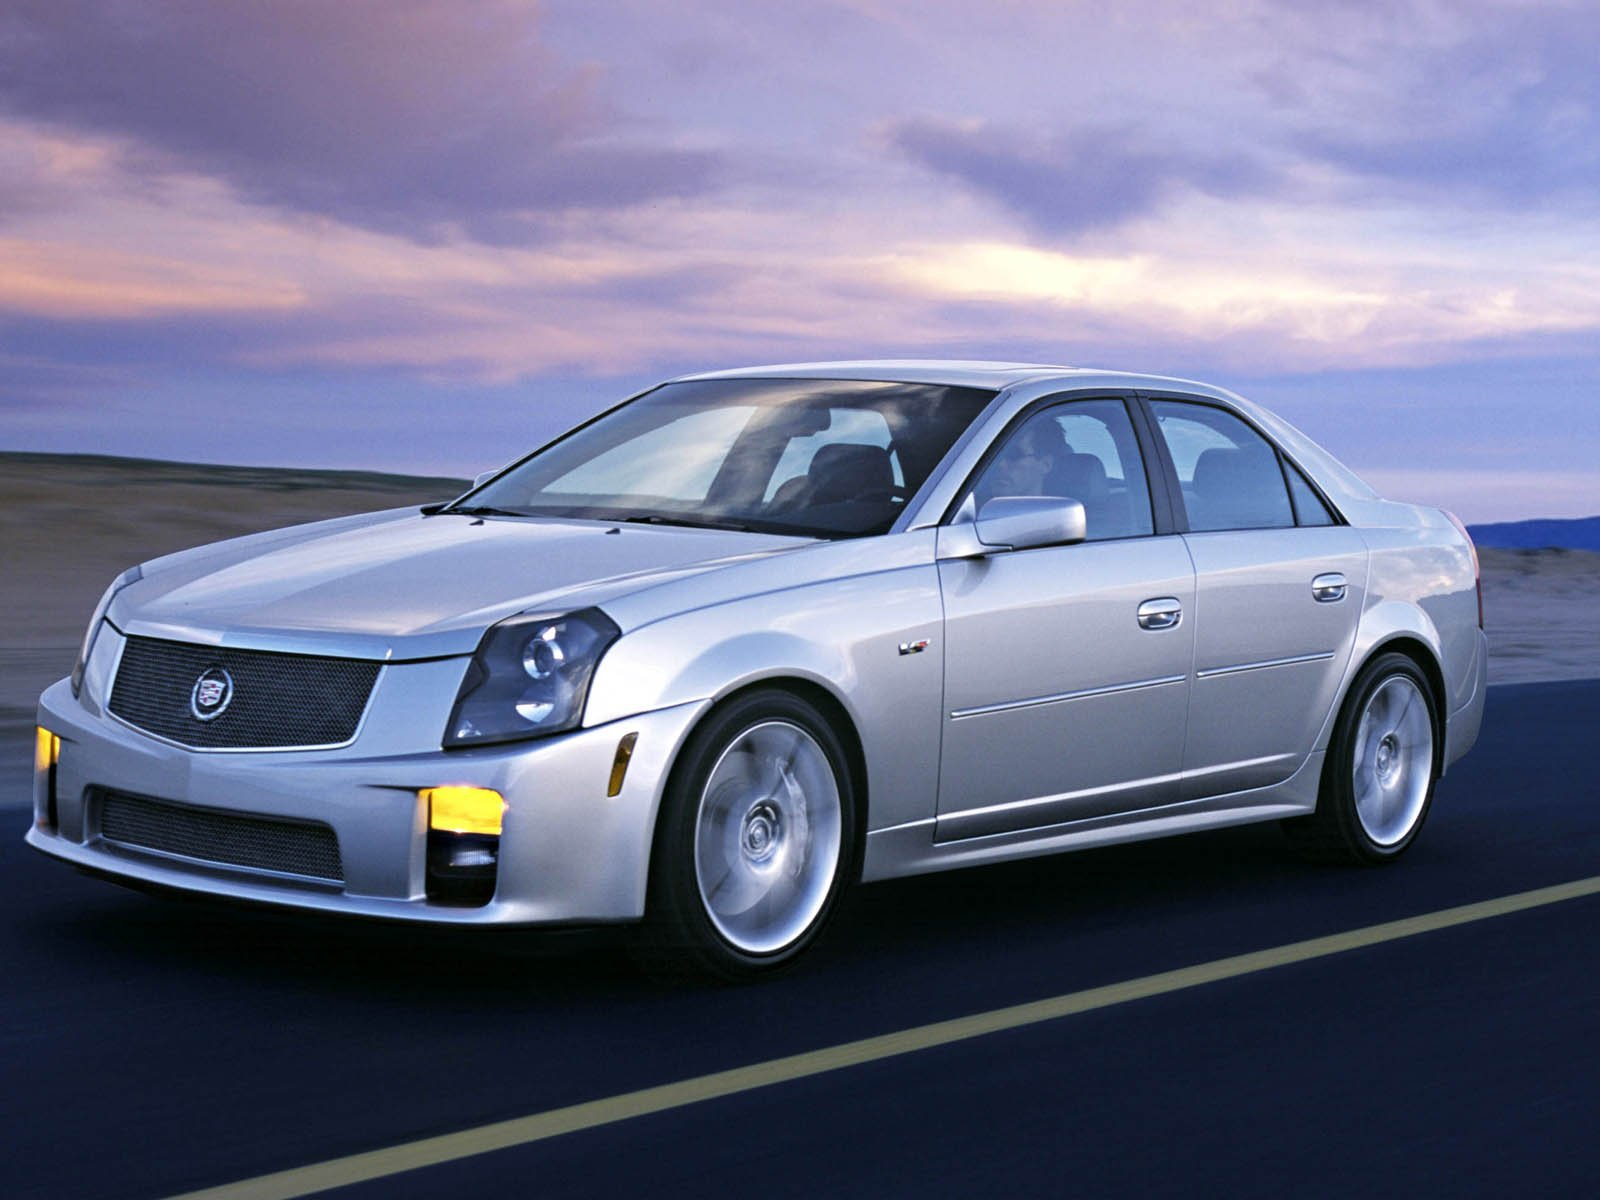 2006 cadillac cts v gallery 31373 top speed. Black Bedroom Furniture Sets. Home Design Ideas